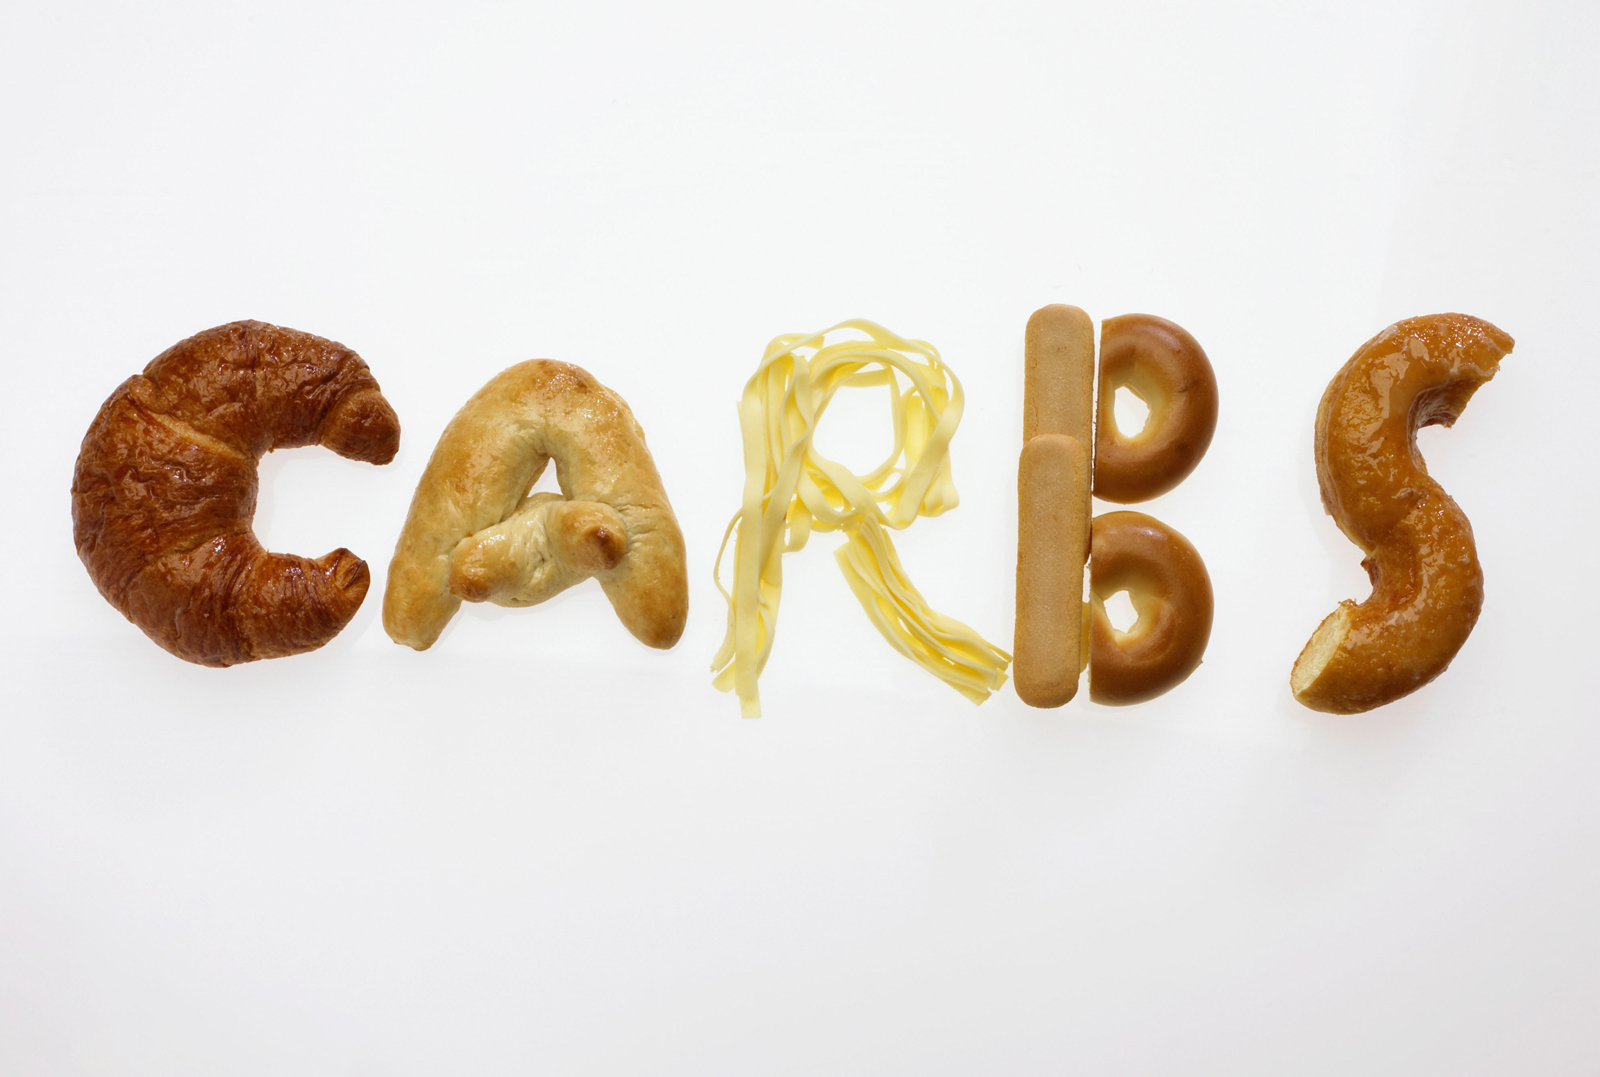 Carbohydrates for cyclists